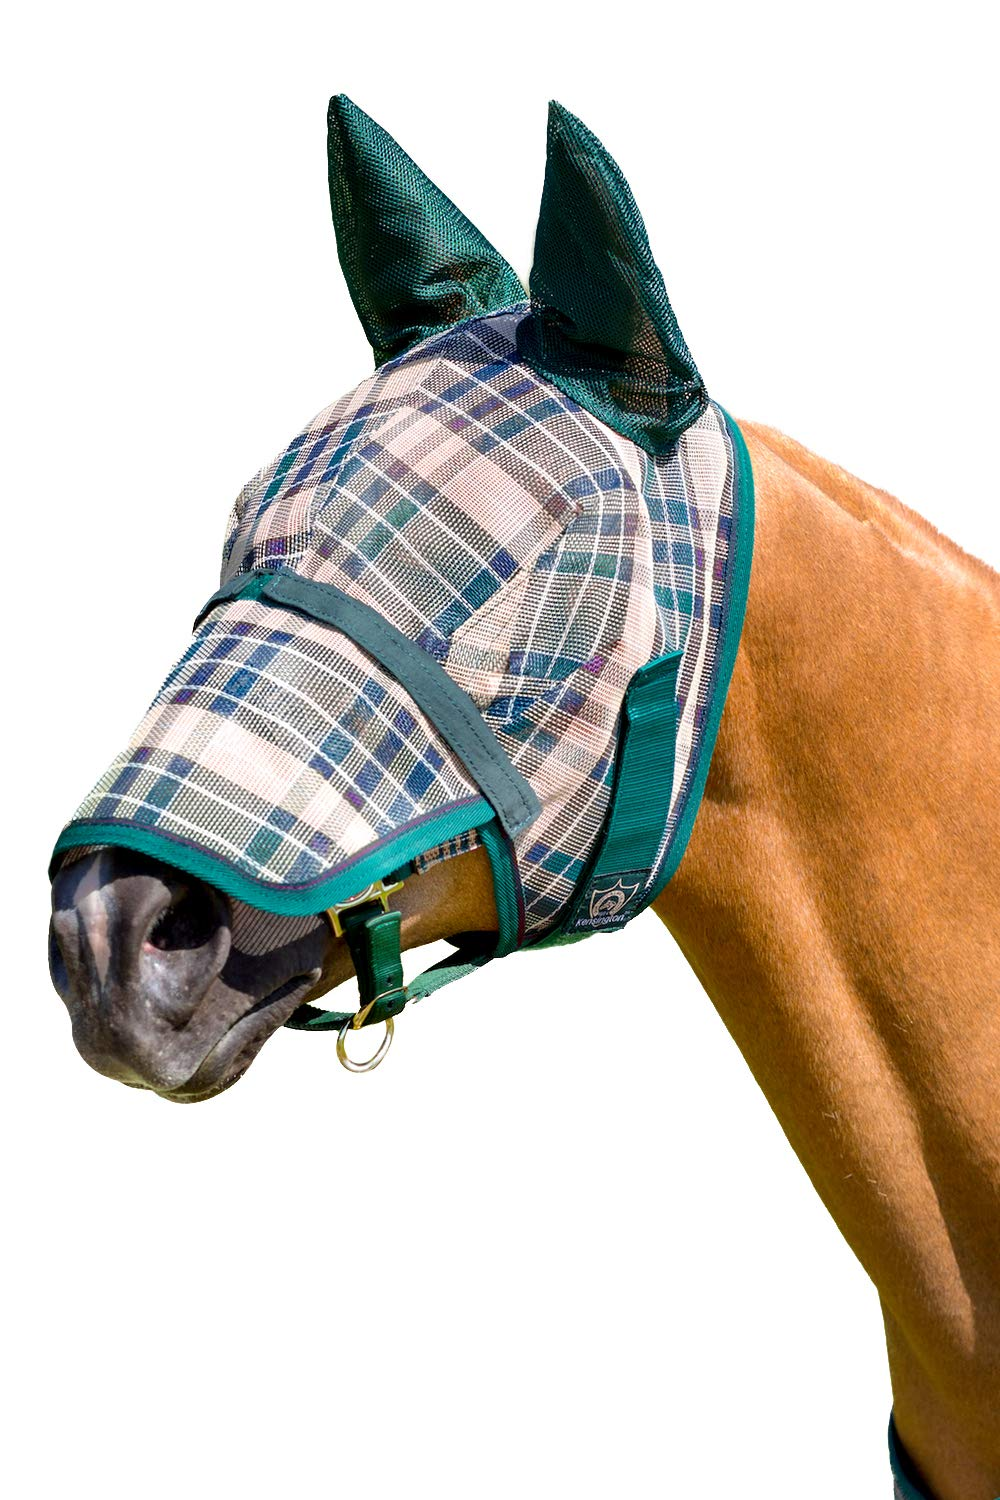 Kensington KPP Fly Mask with Nose Cover and Ears, Deluxe Hunter Plaid, Medium